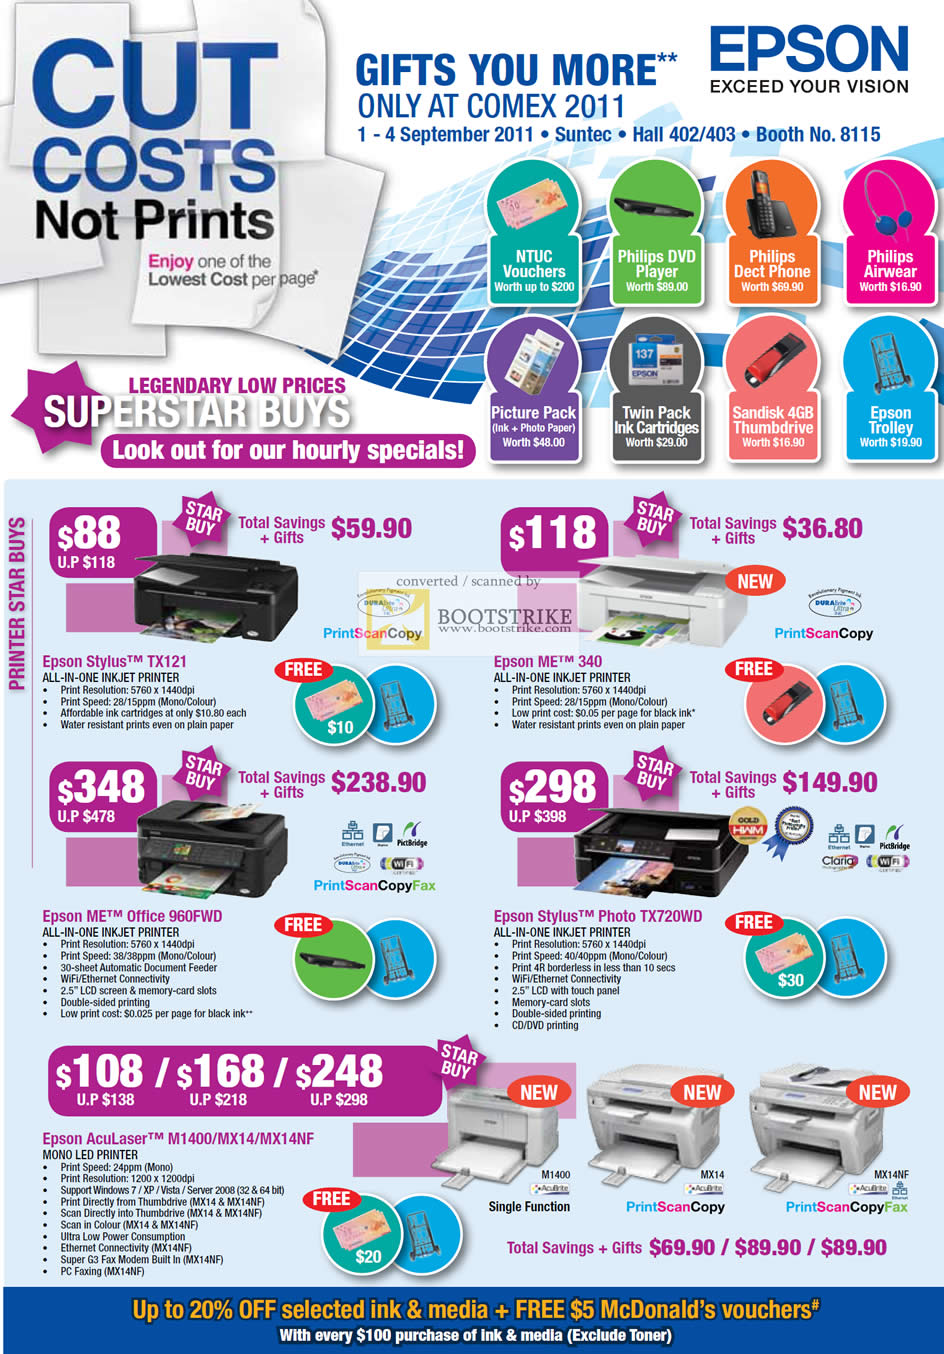 COMEX 2011 price list image brochure of Epson Printers Inkjet Stylus TX121 ME 340 Office 960WD Photo TX720WD AcuLaser M1400 MX12 MX14NF LED